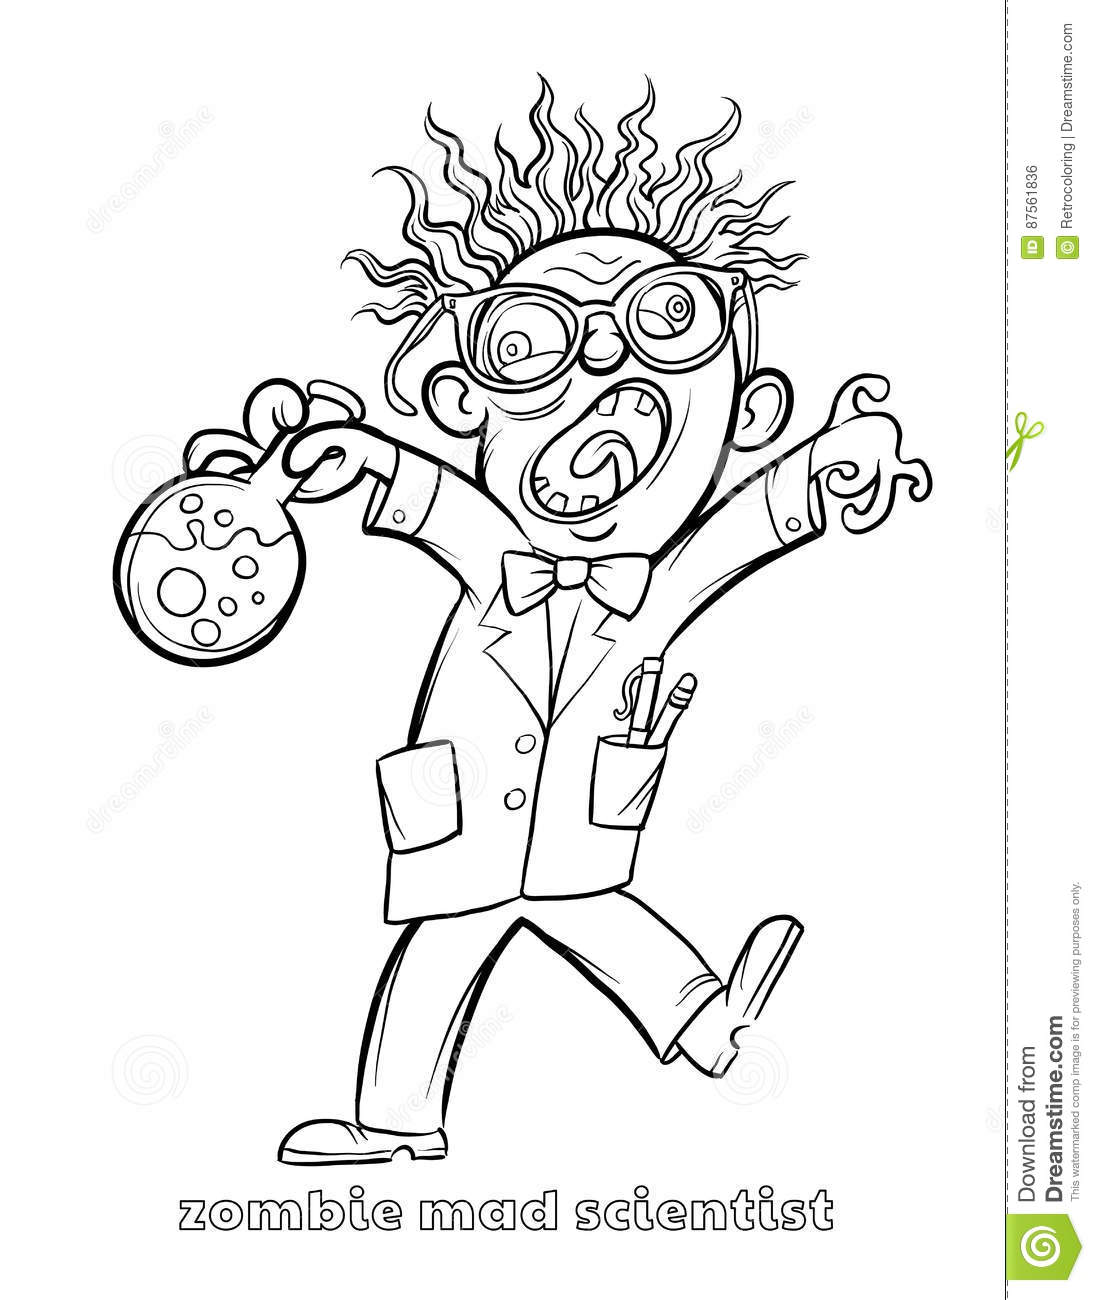 Funny Zombie Mad Scientist Coloring Page Stock Vector